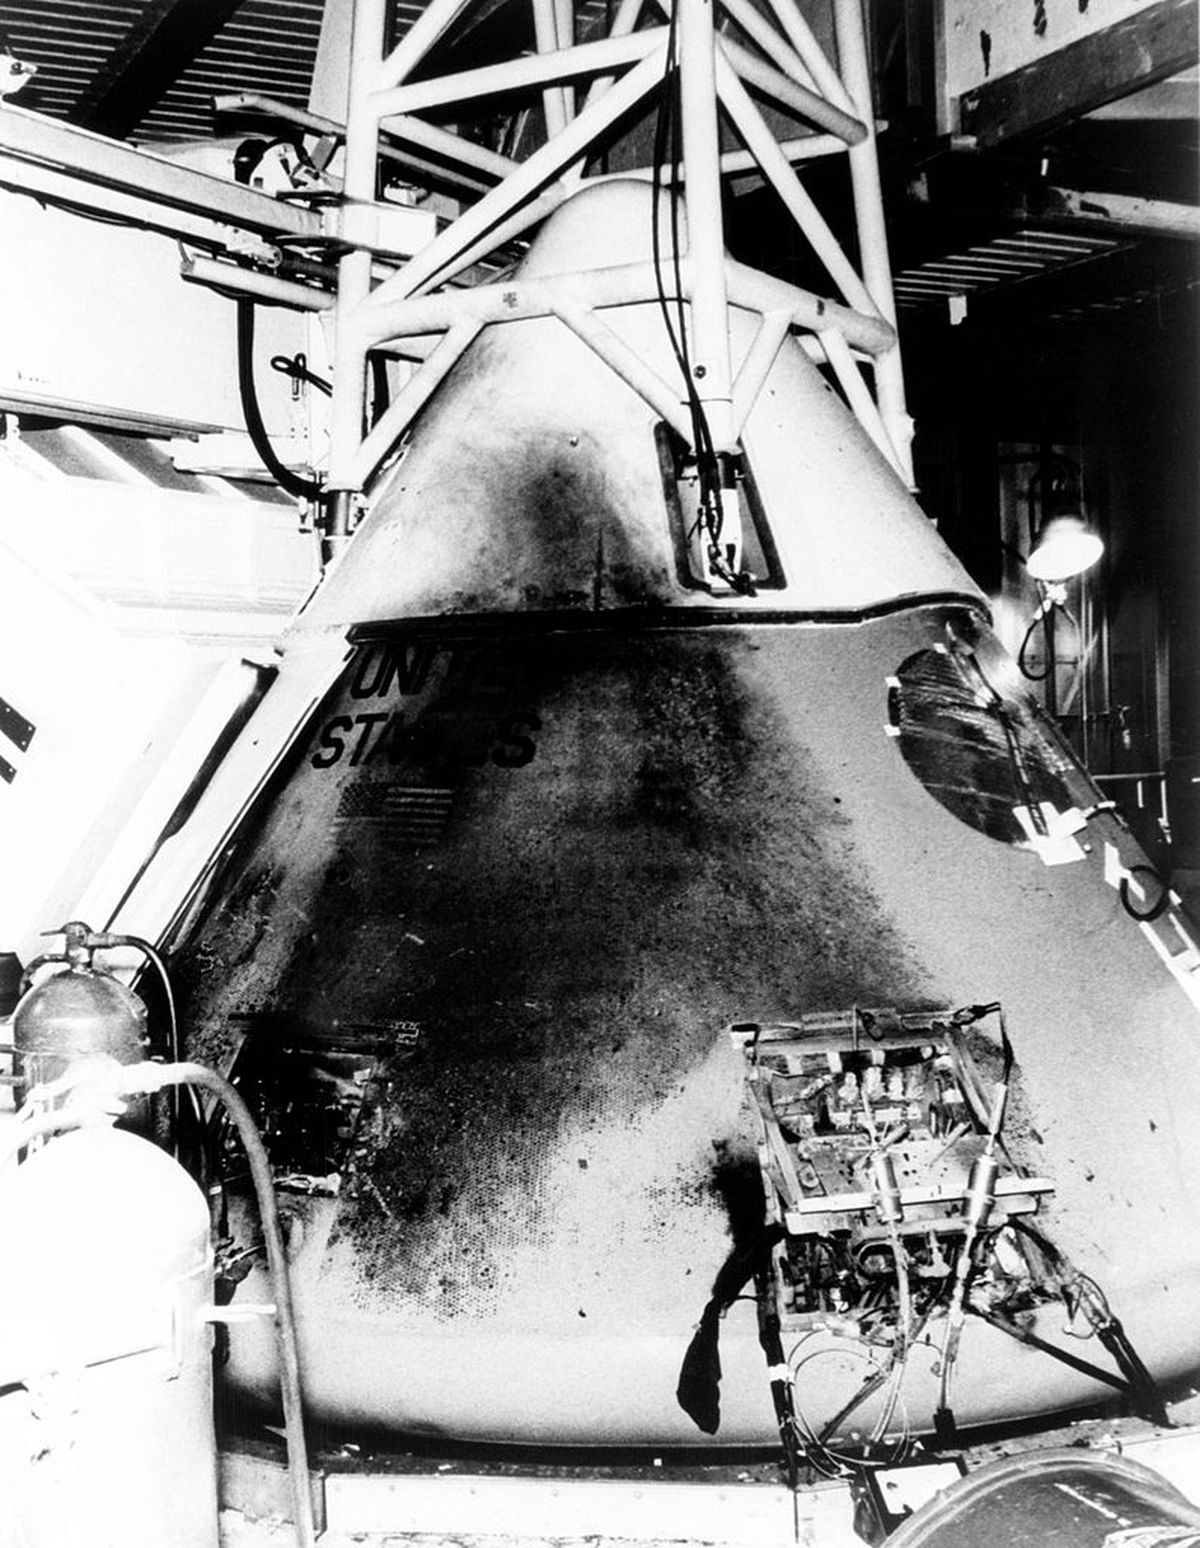 The command module of Apollo 1 the day after the fatal fire that killed 3 astronauts